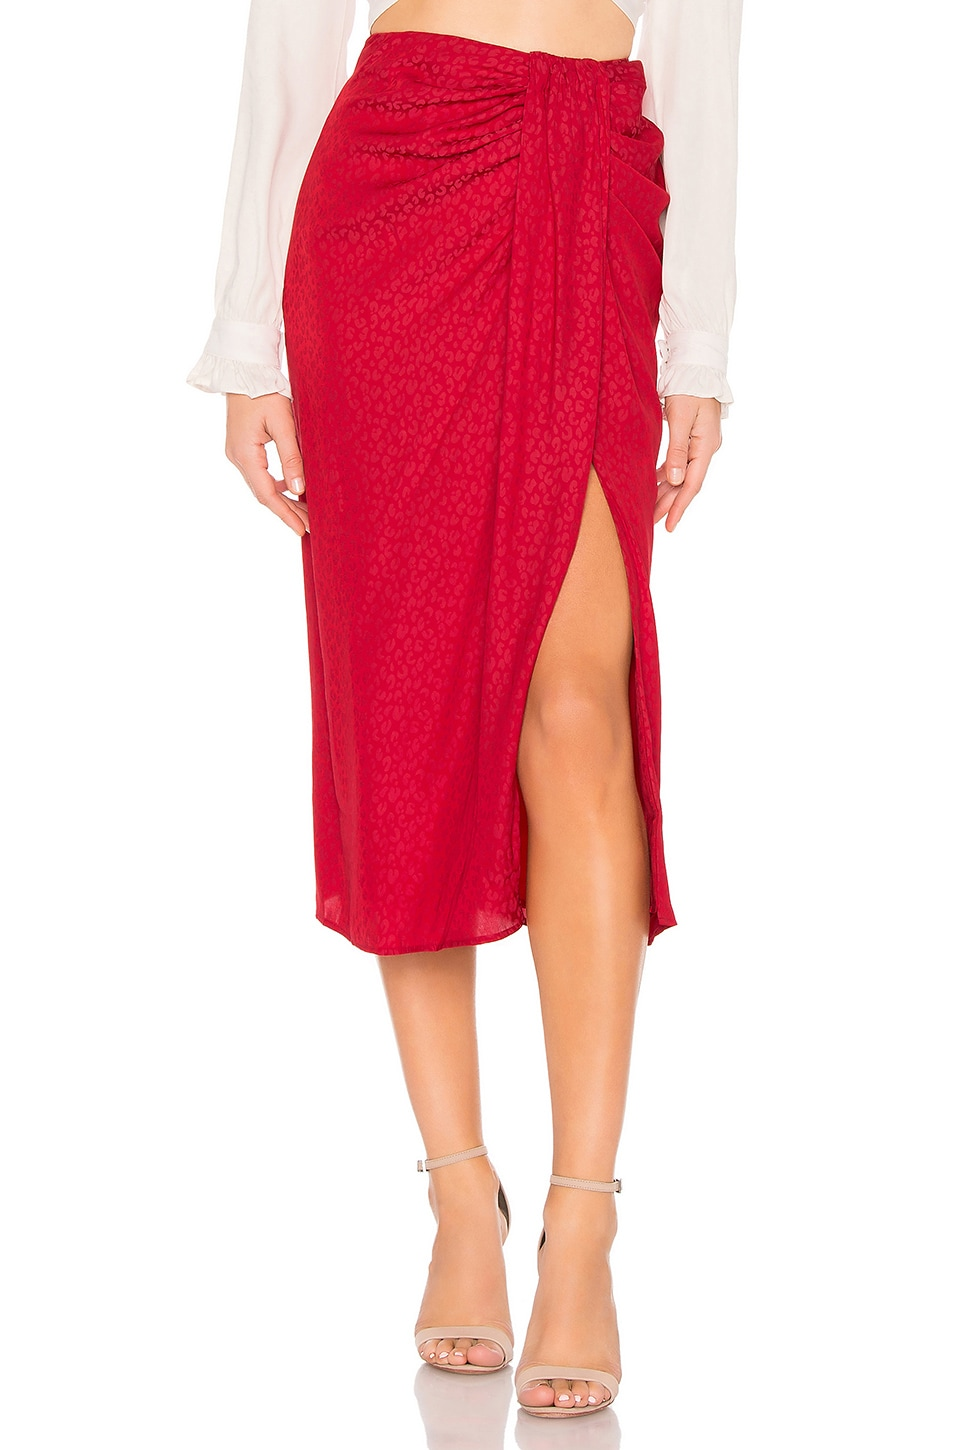 L'Academie The Maryam Skirt in Lava Red